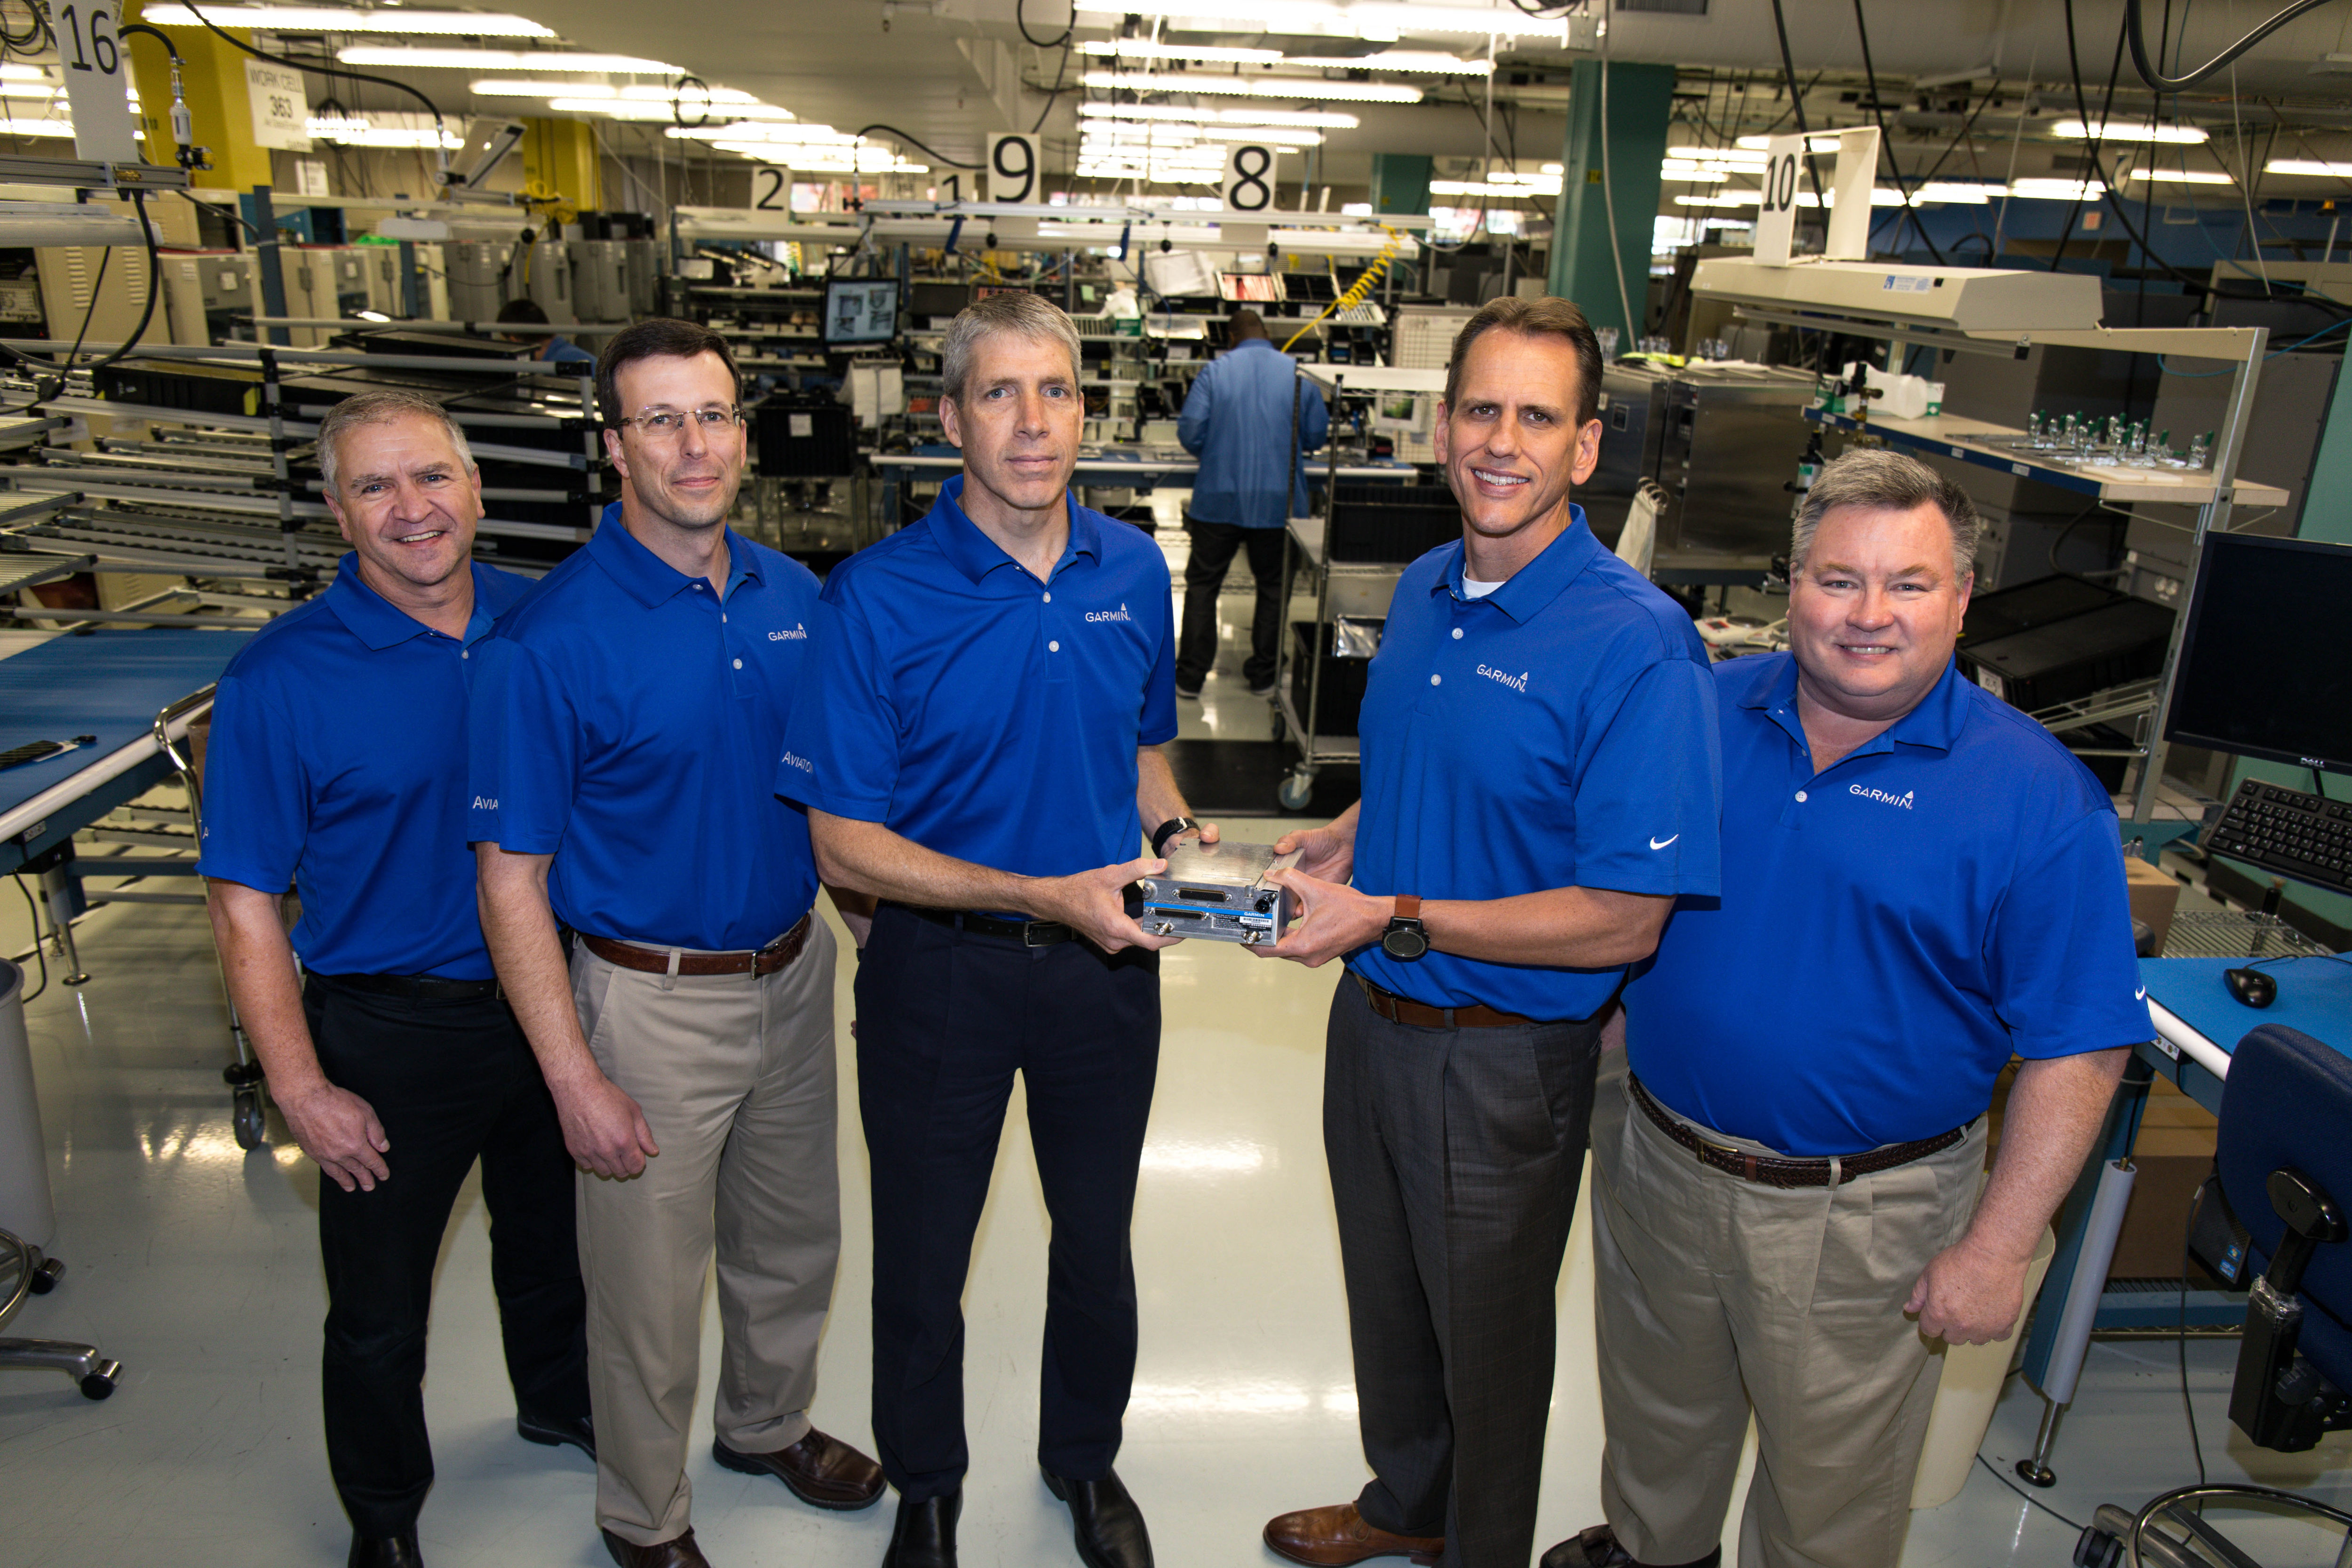 Five men stand in a horizontal row, with the middle two holding the GTX 3000 transponder.